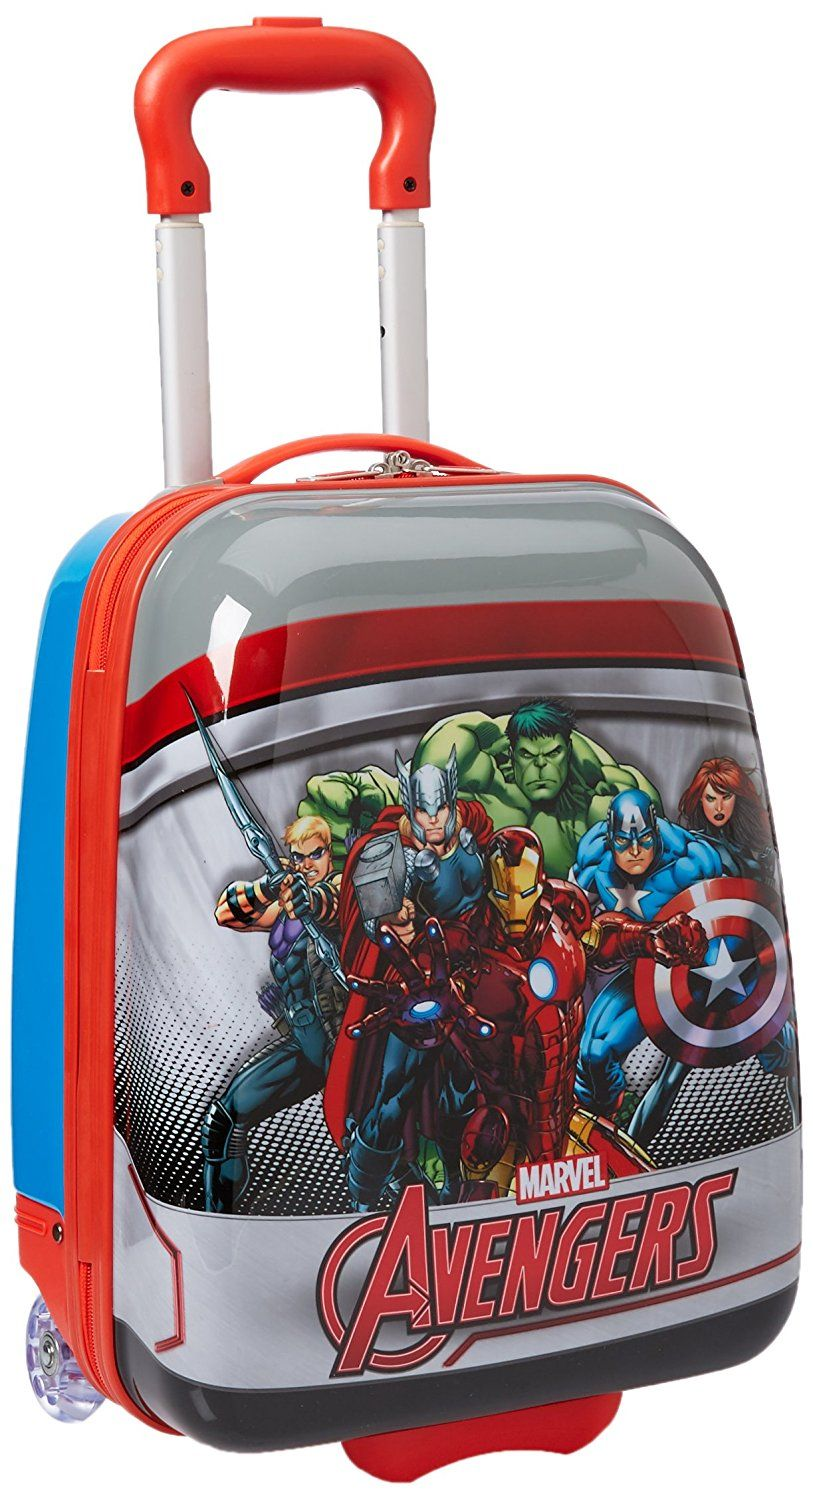 a6e47ec048 American Tourister 74725 Marvel Avengers 18 Inch Upright Hardside  Children s Luggage    Check out this great product.